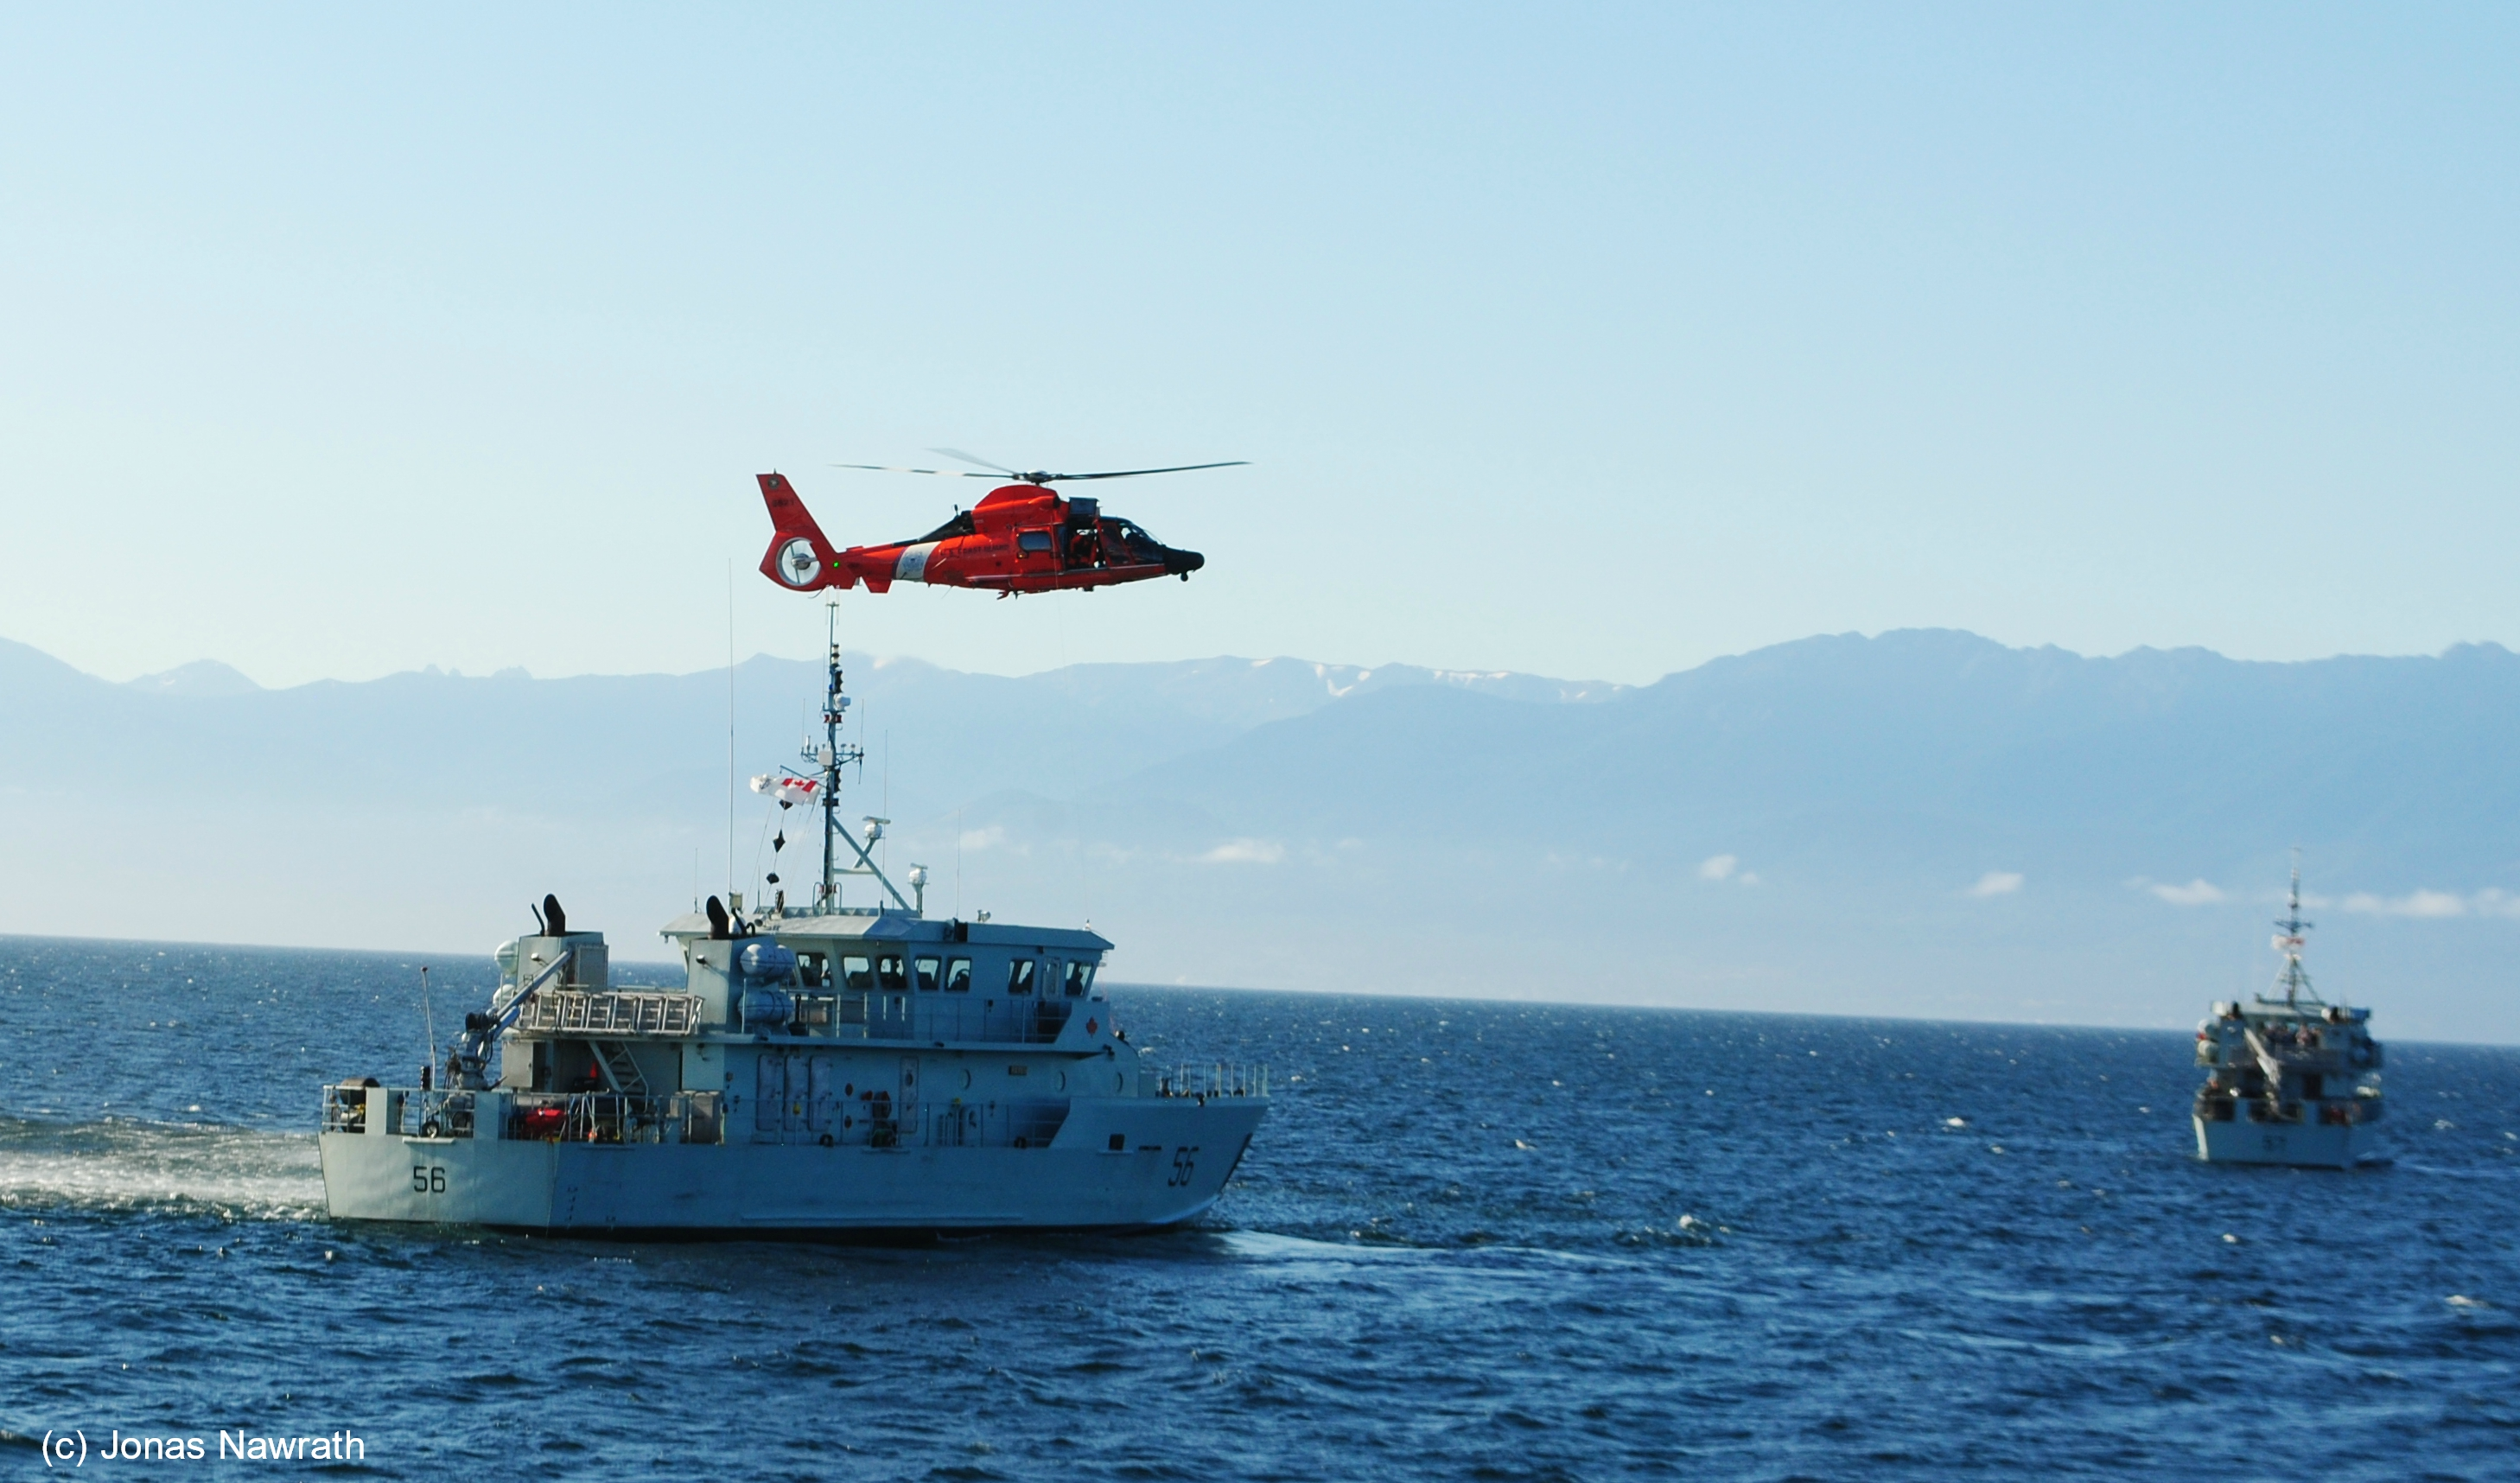 A red military helicopter flies over a military vessel